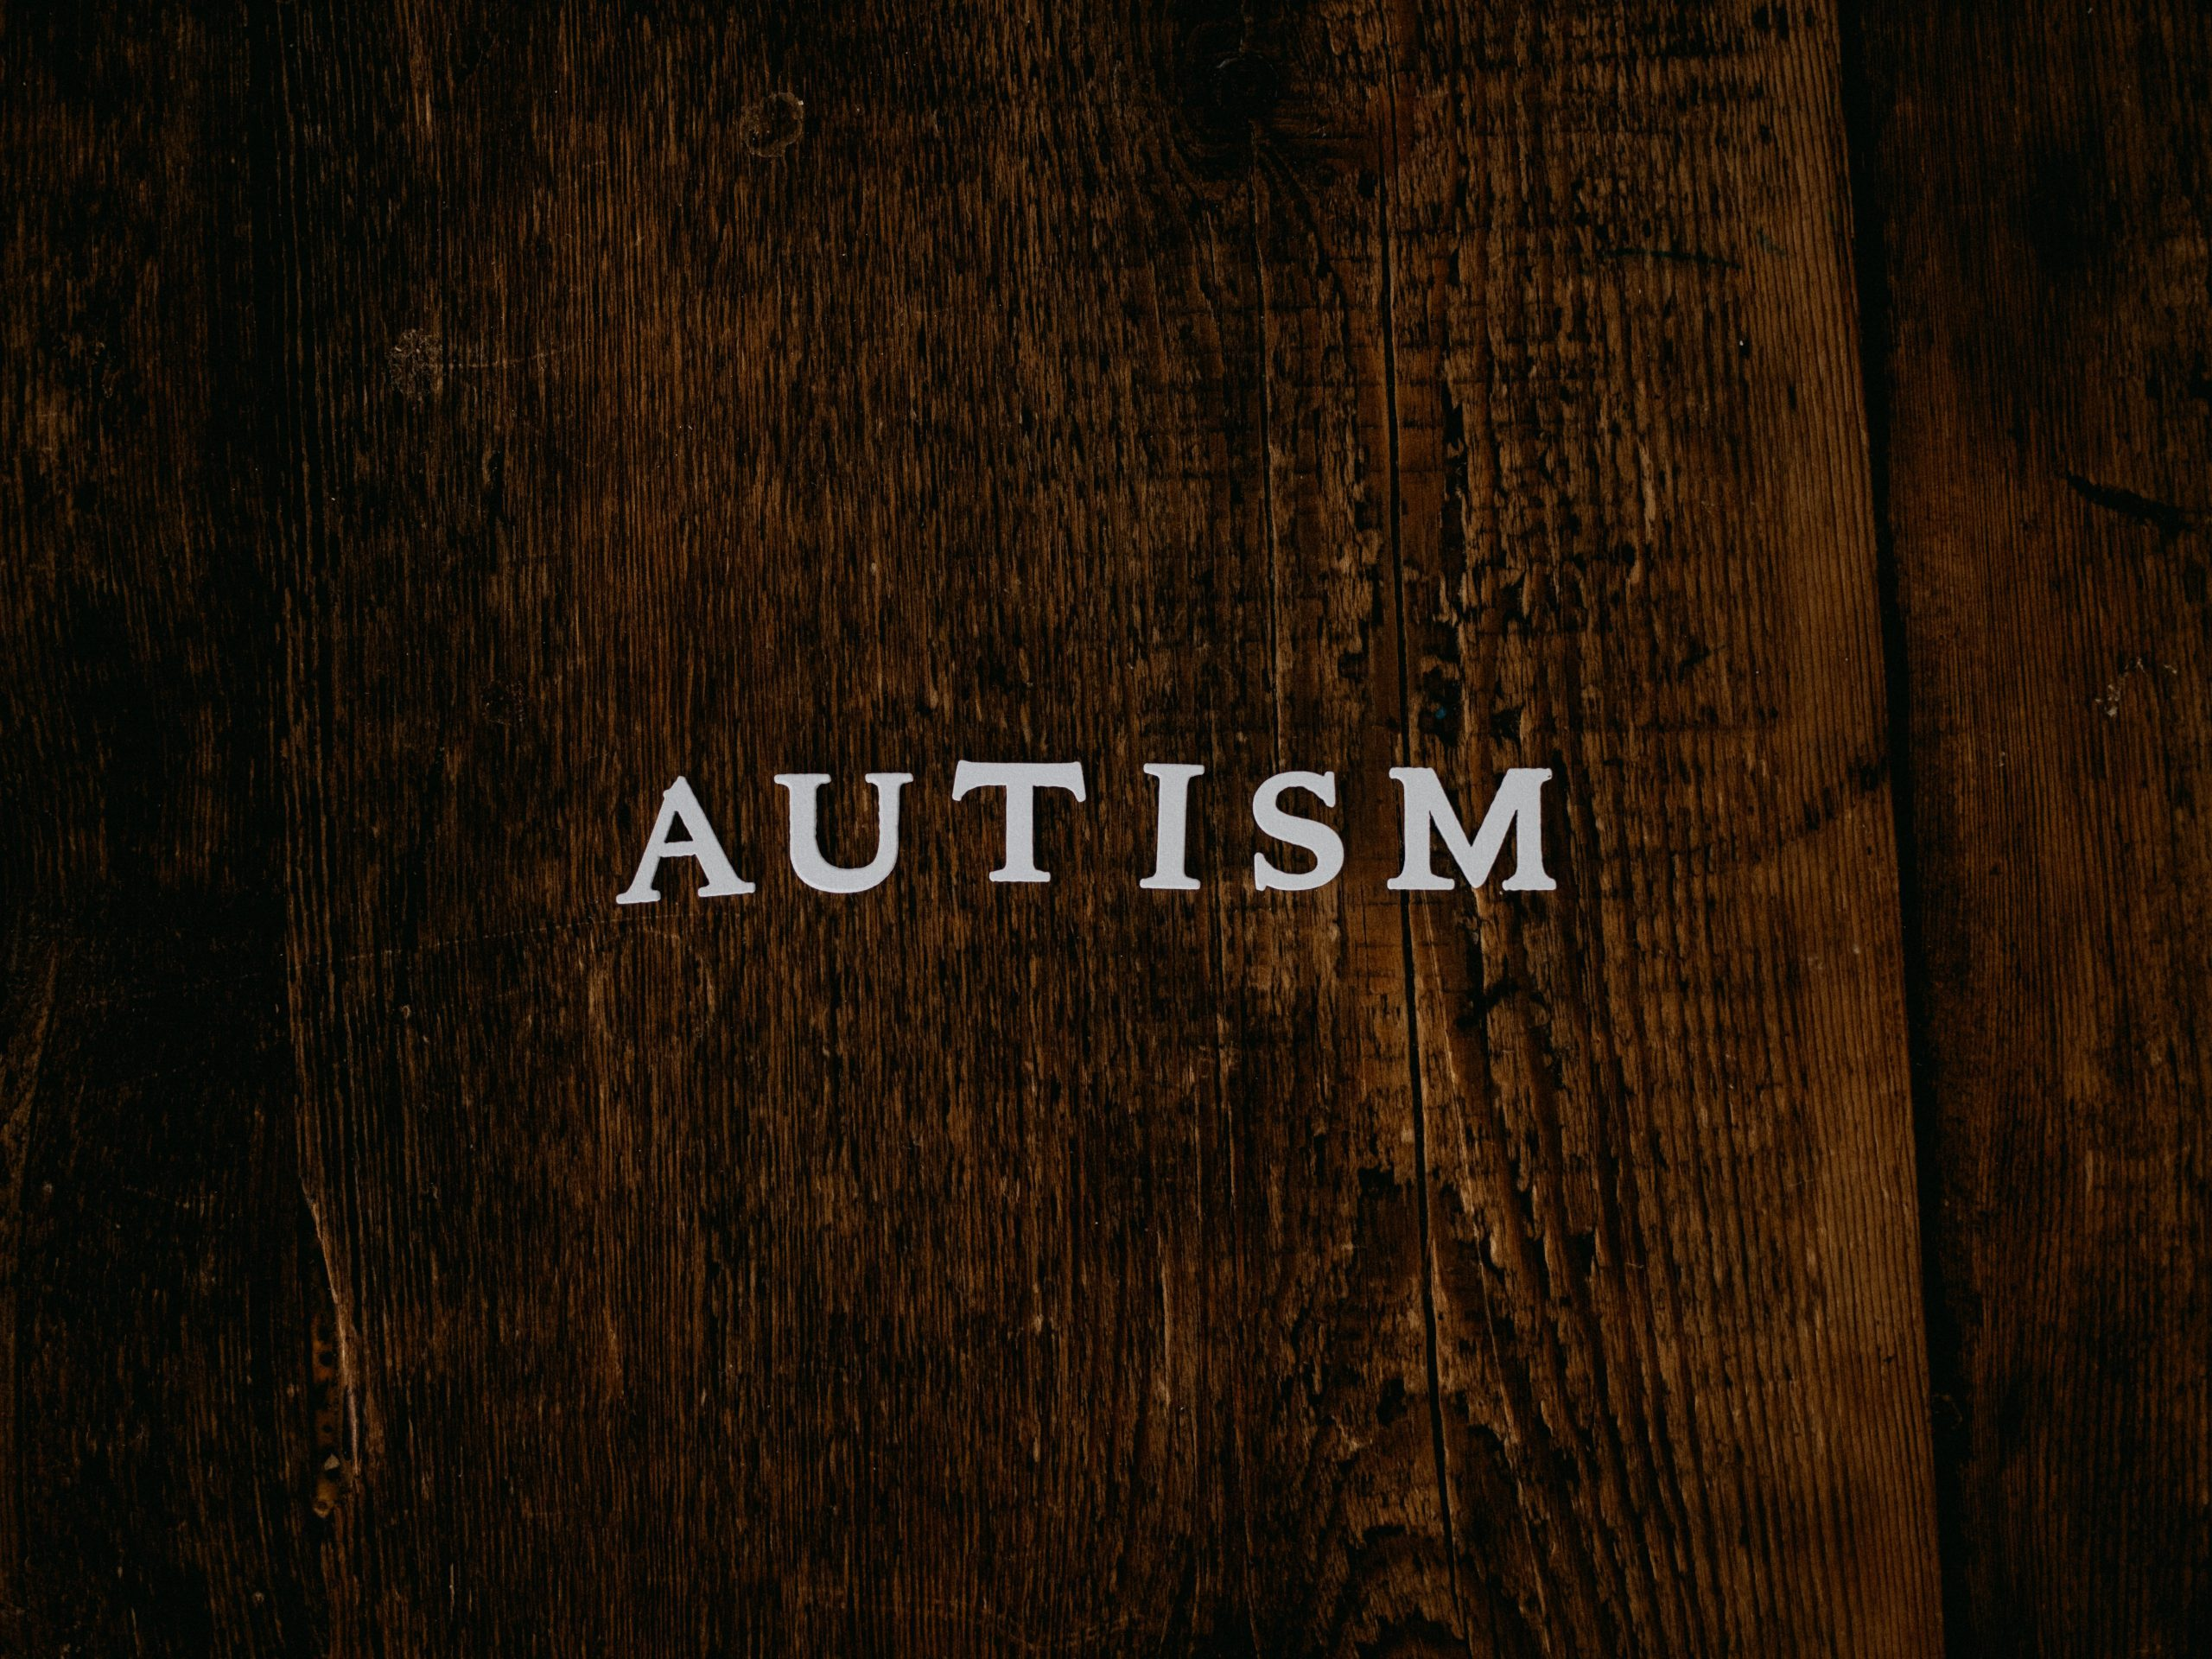 5 things I want you to know about my autistic kid